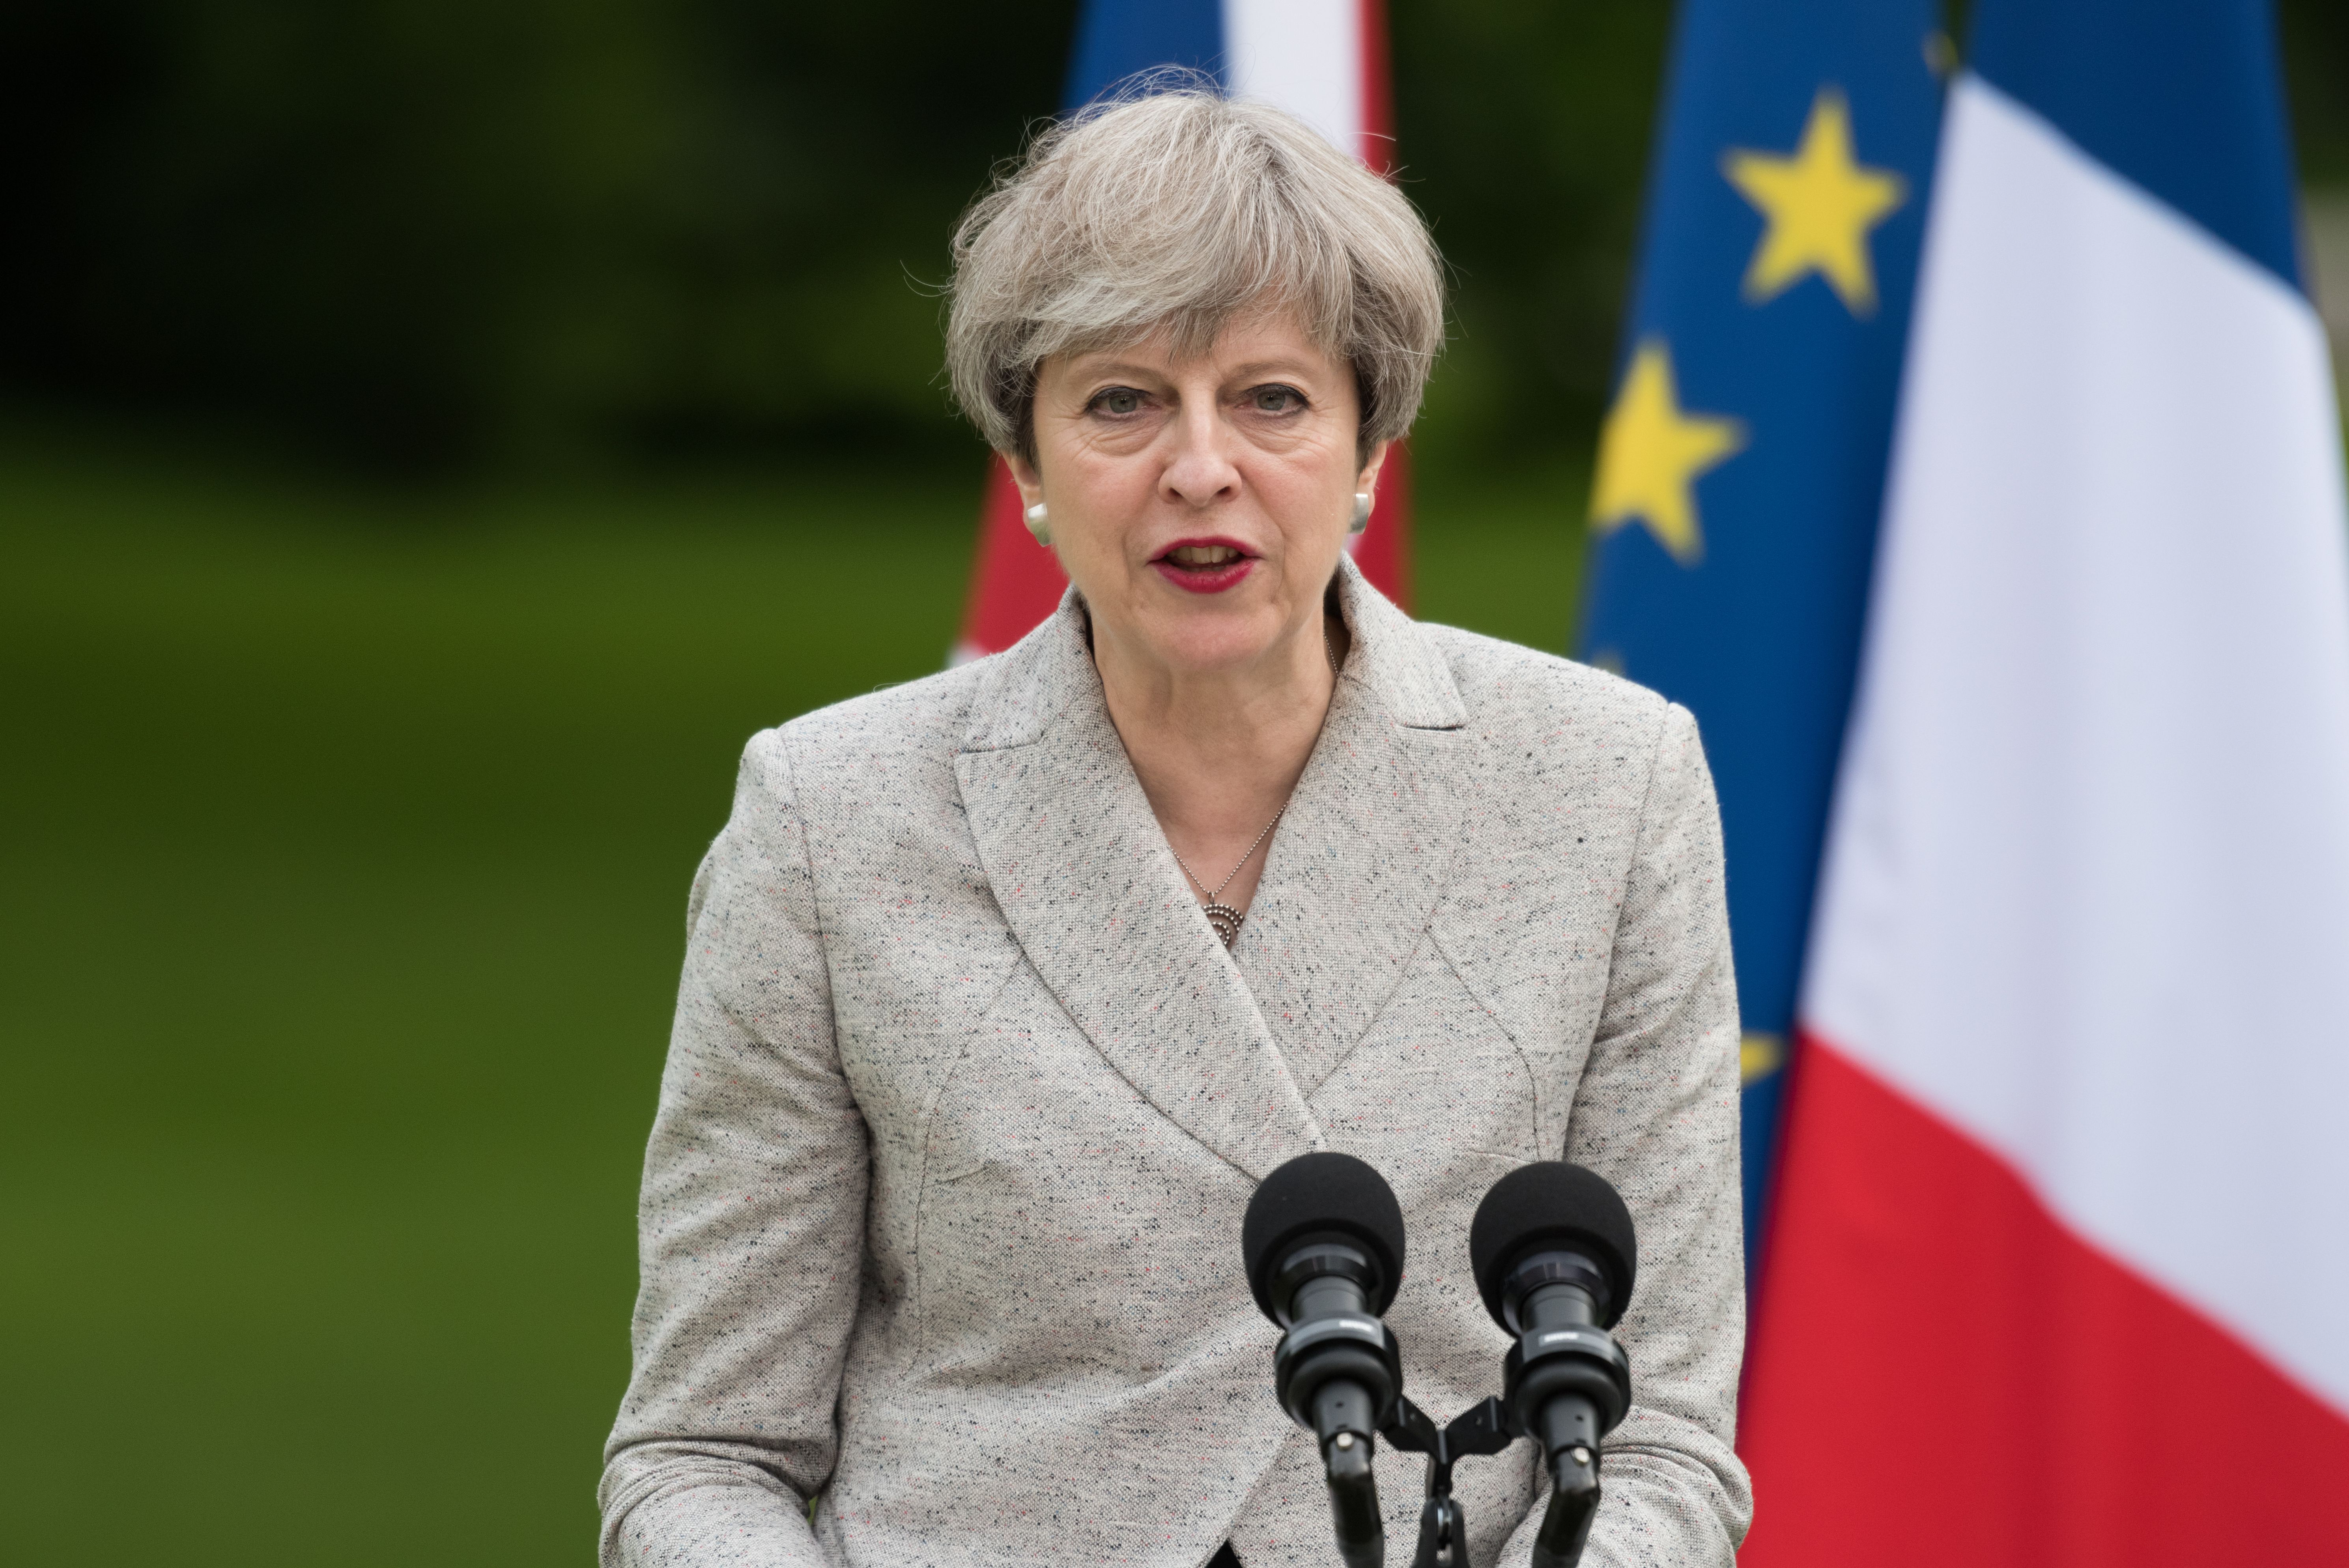 Theresa May, fot. Frederic Legrand/Shutterstock